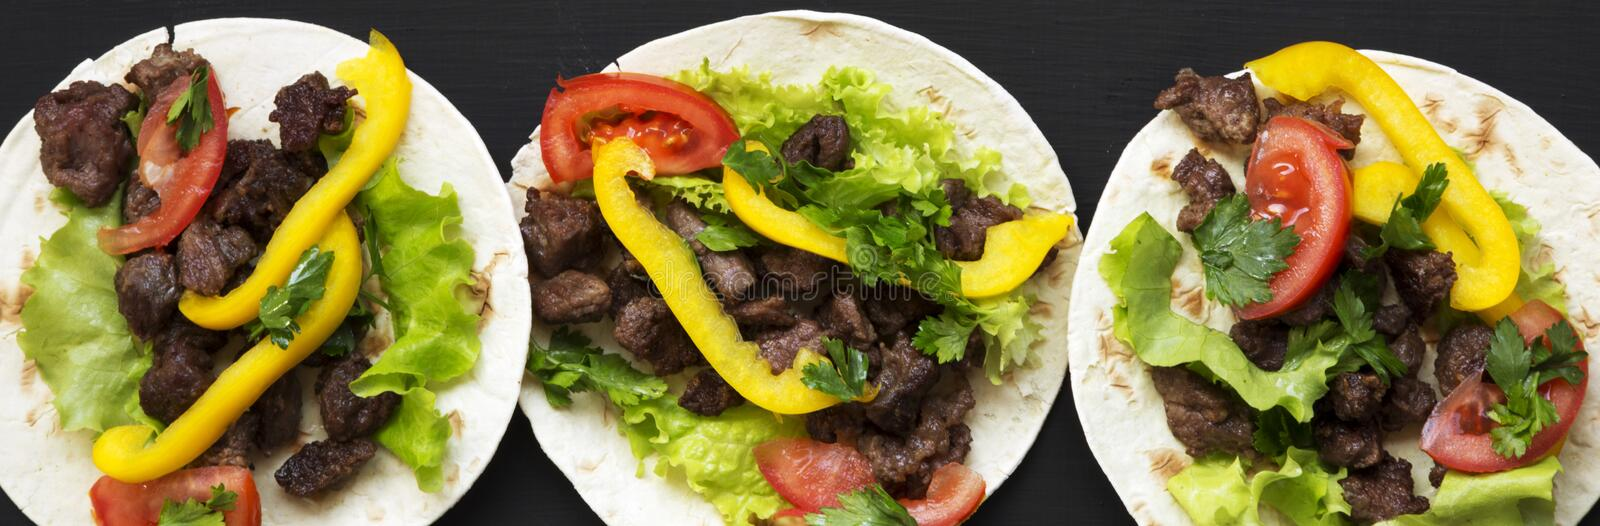 Corn tortillas with beef and vegetables on black background, top view. Mexican cuisine. Flat lay, from above royalty free stock photo